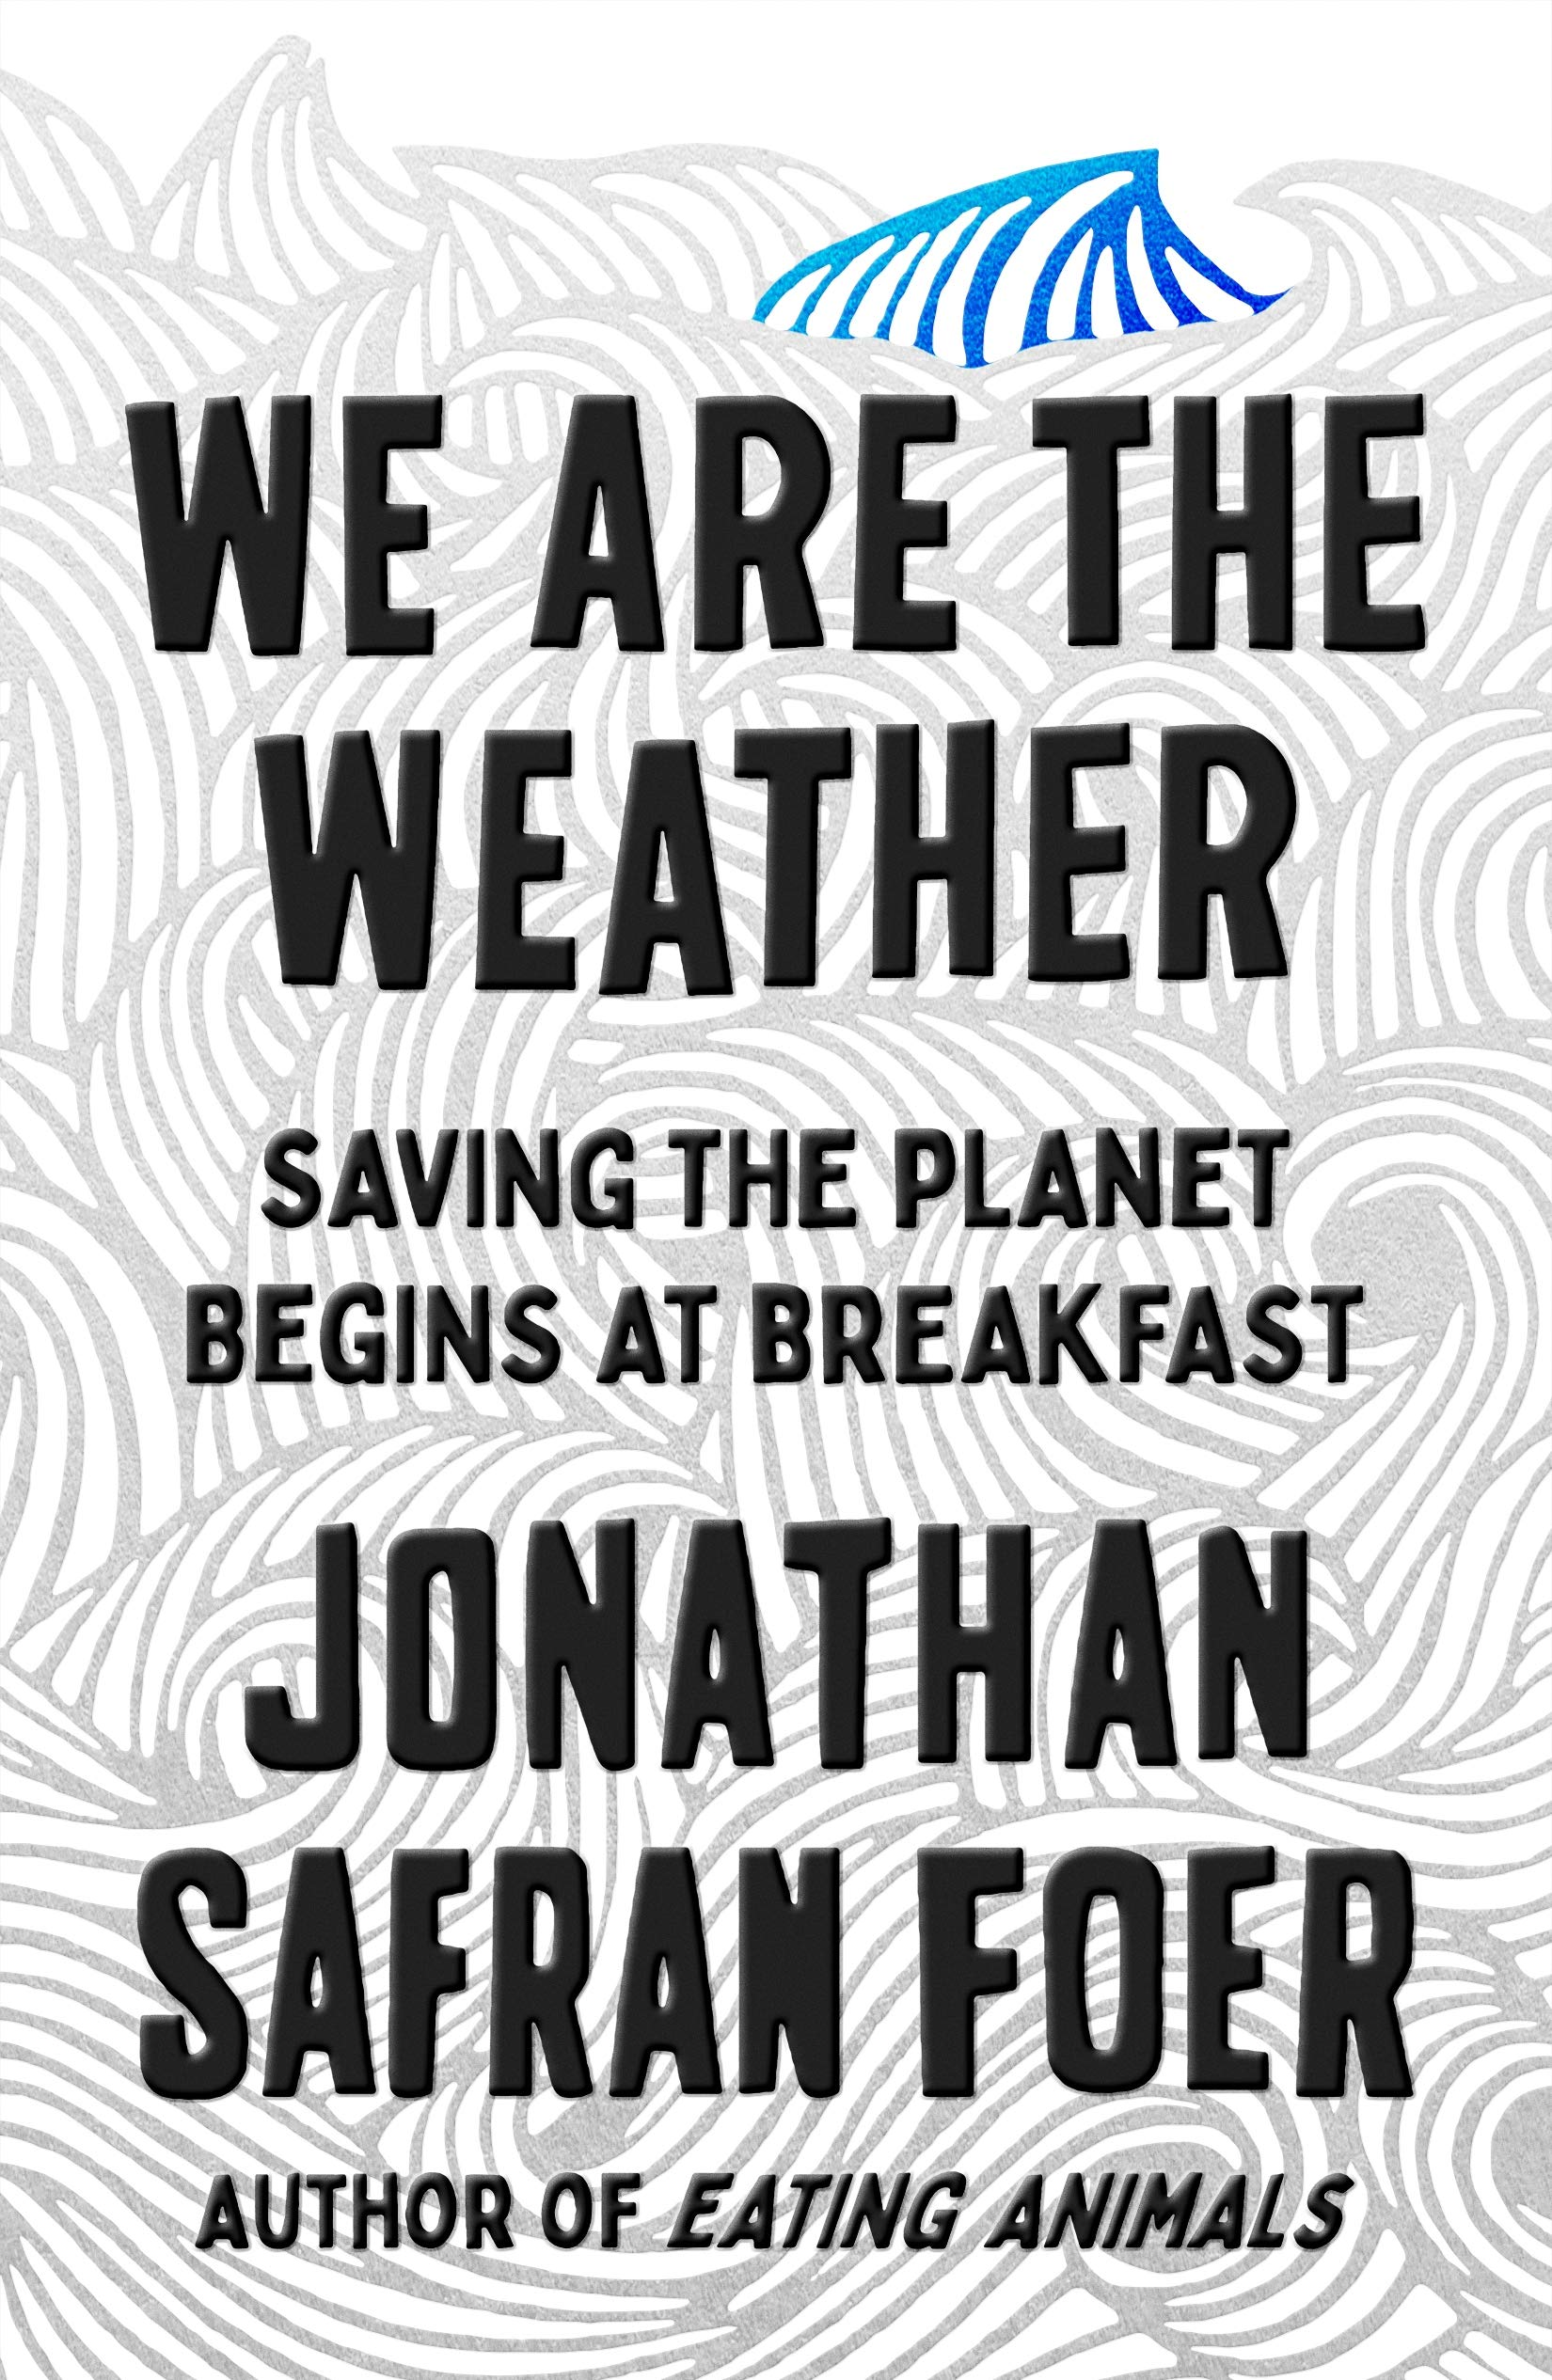 Image of book cover for We Are the Weather by Jonathan Safran Foer